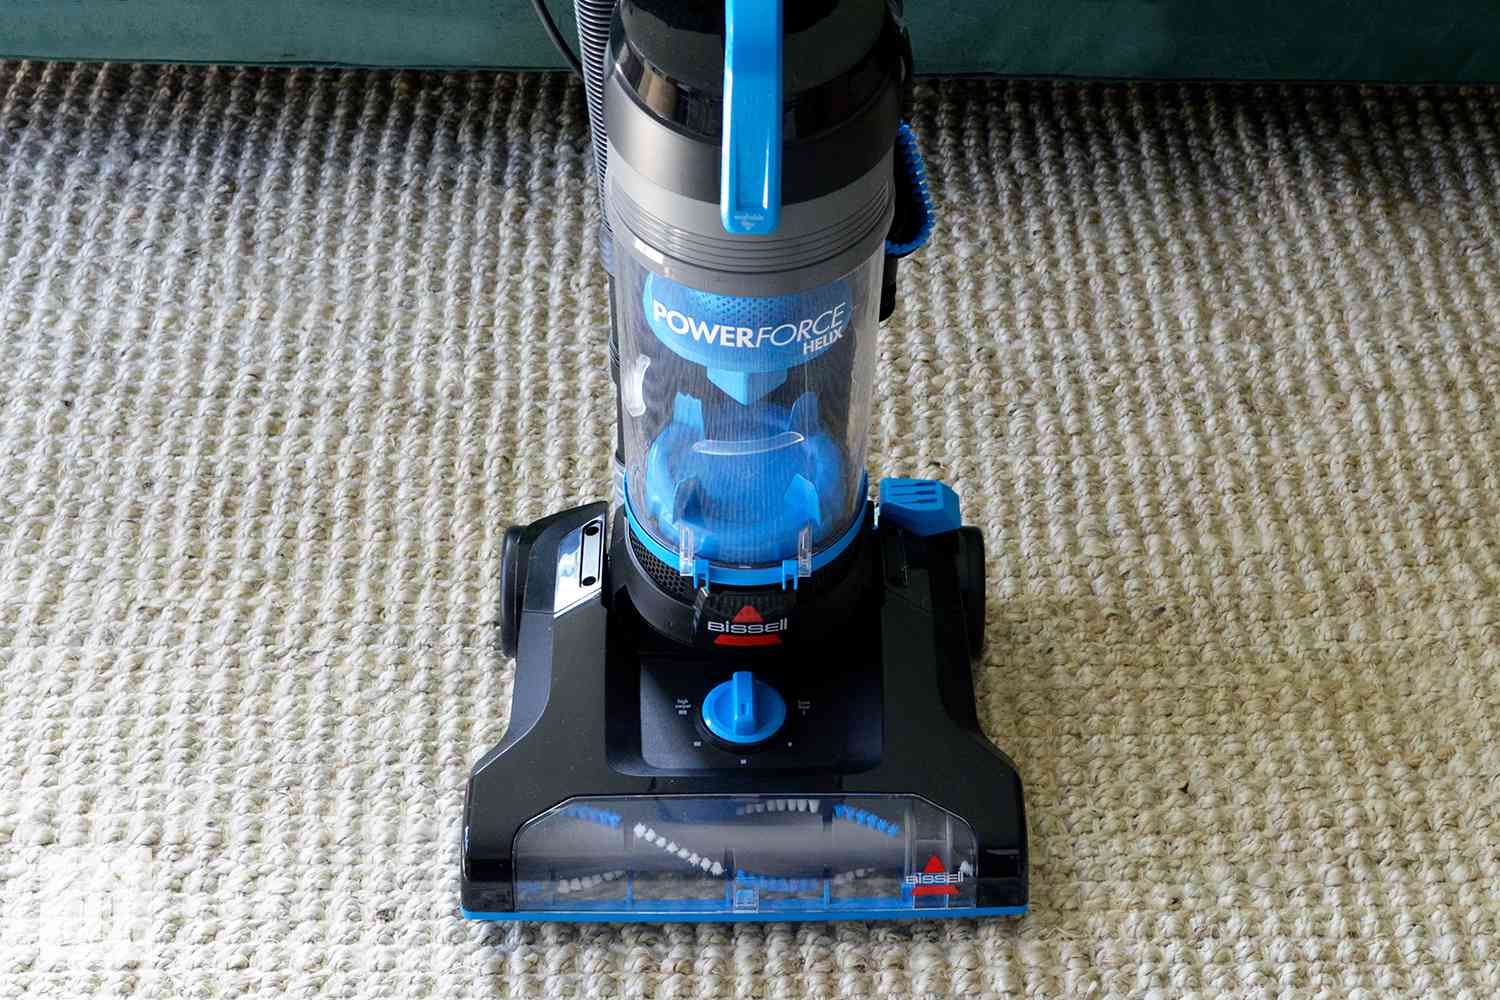 Bissell Powerforce Helix Vacuum Review No Frills Gets The Job Done